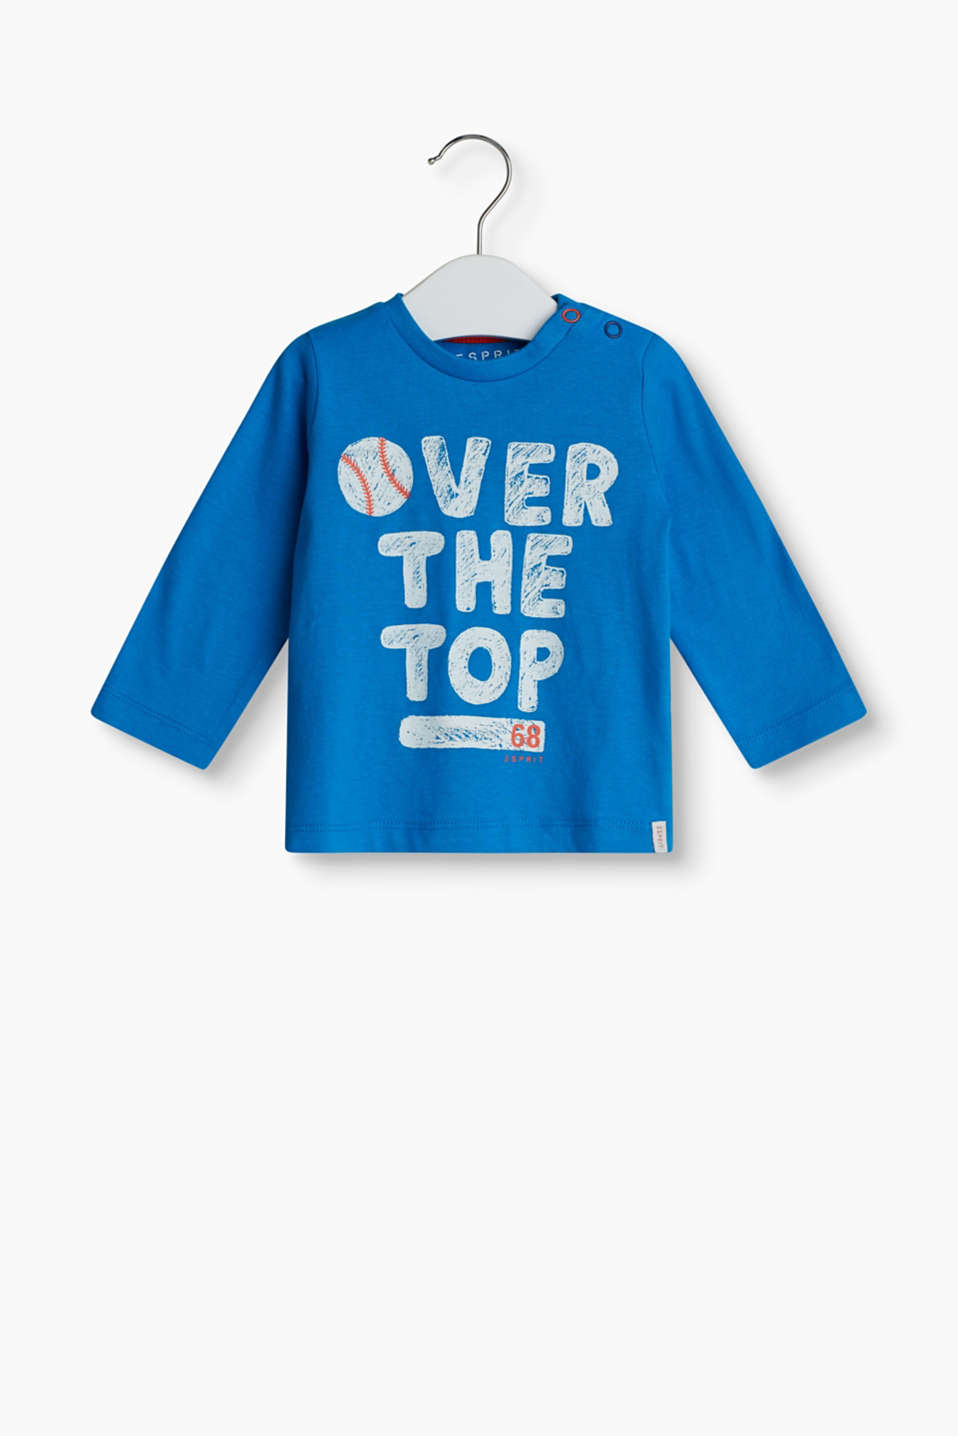 OVER THE TOP – long sleeve top in soft cotton jersey